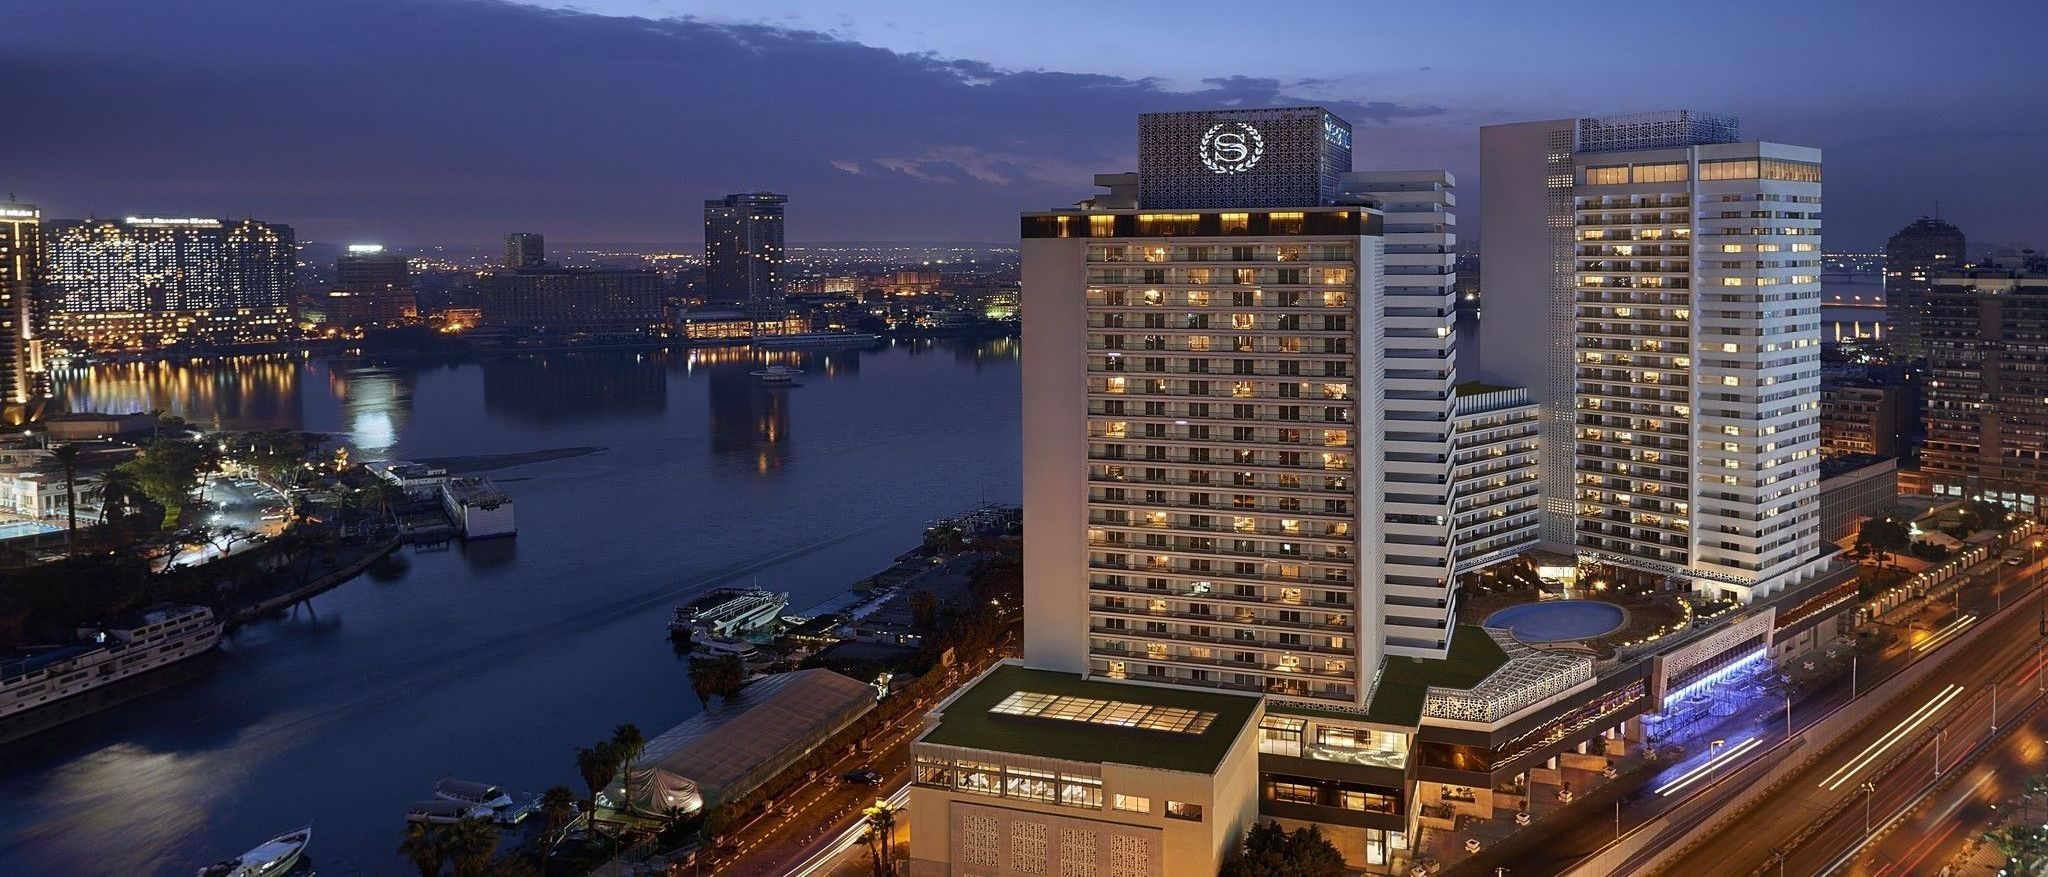 Welcome to the Sheraton Cairo Hotel